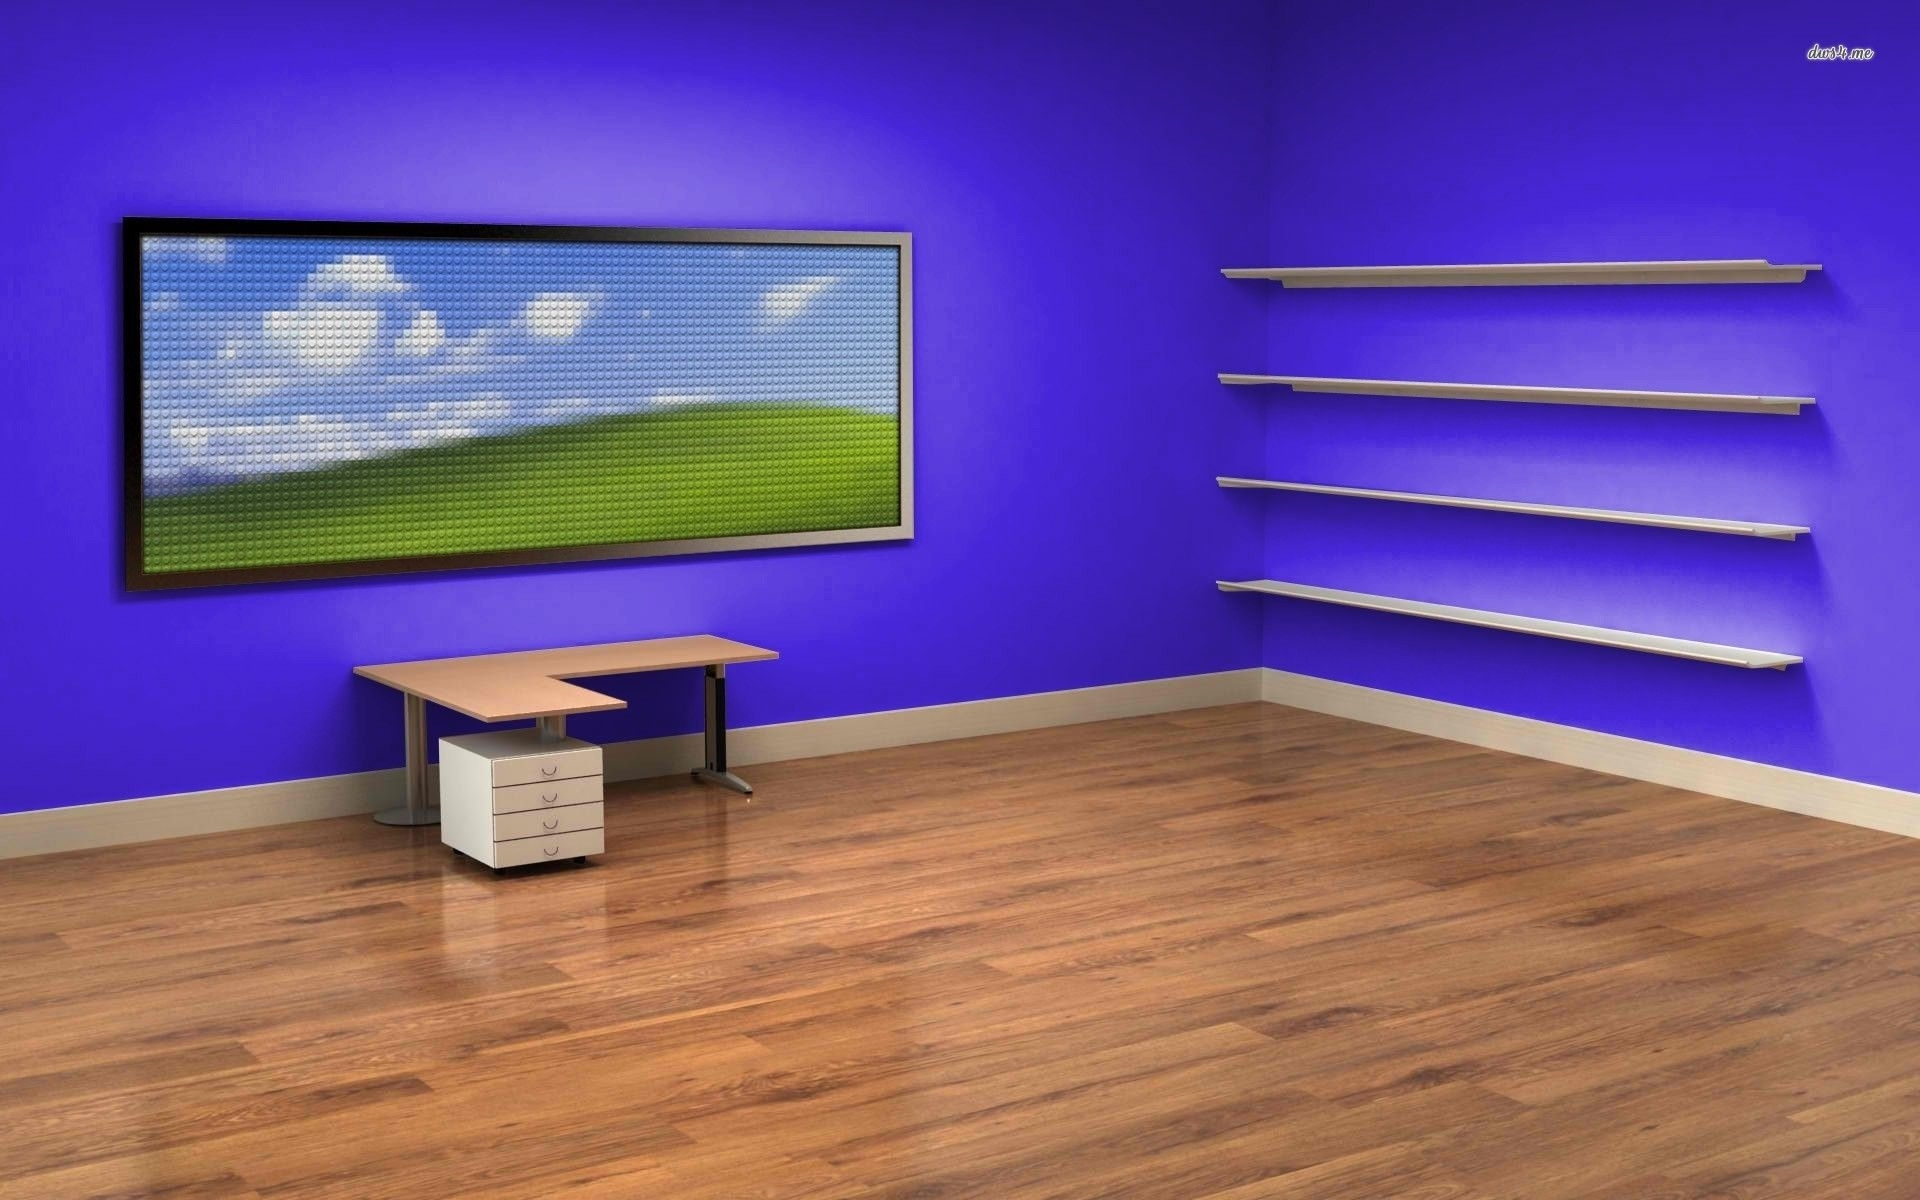 desk and shelves desktop wallpaper - wallpapersafari | epic car